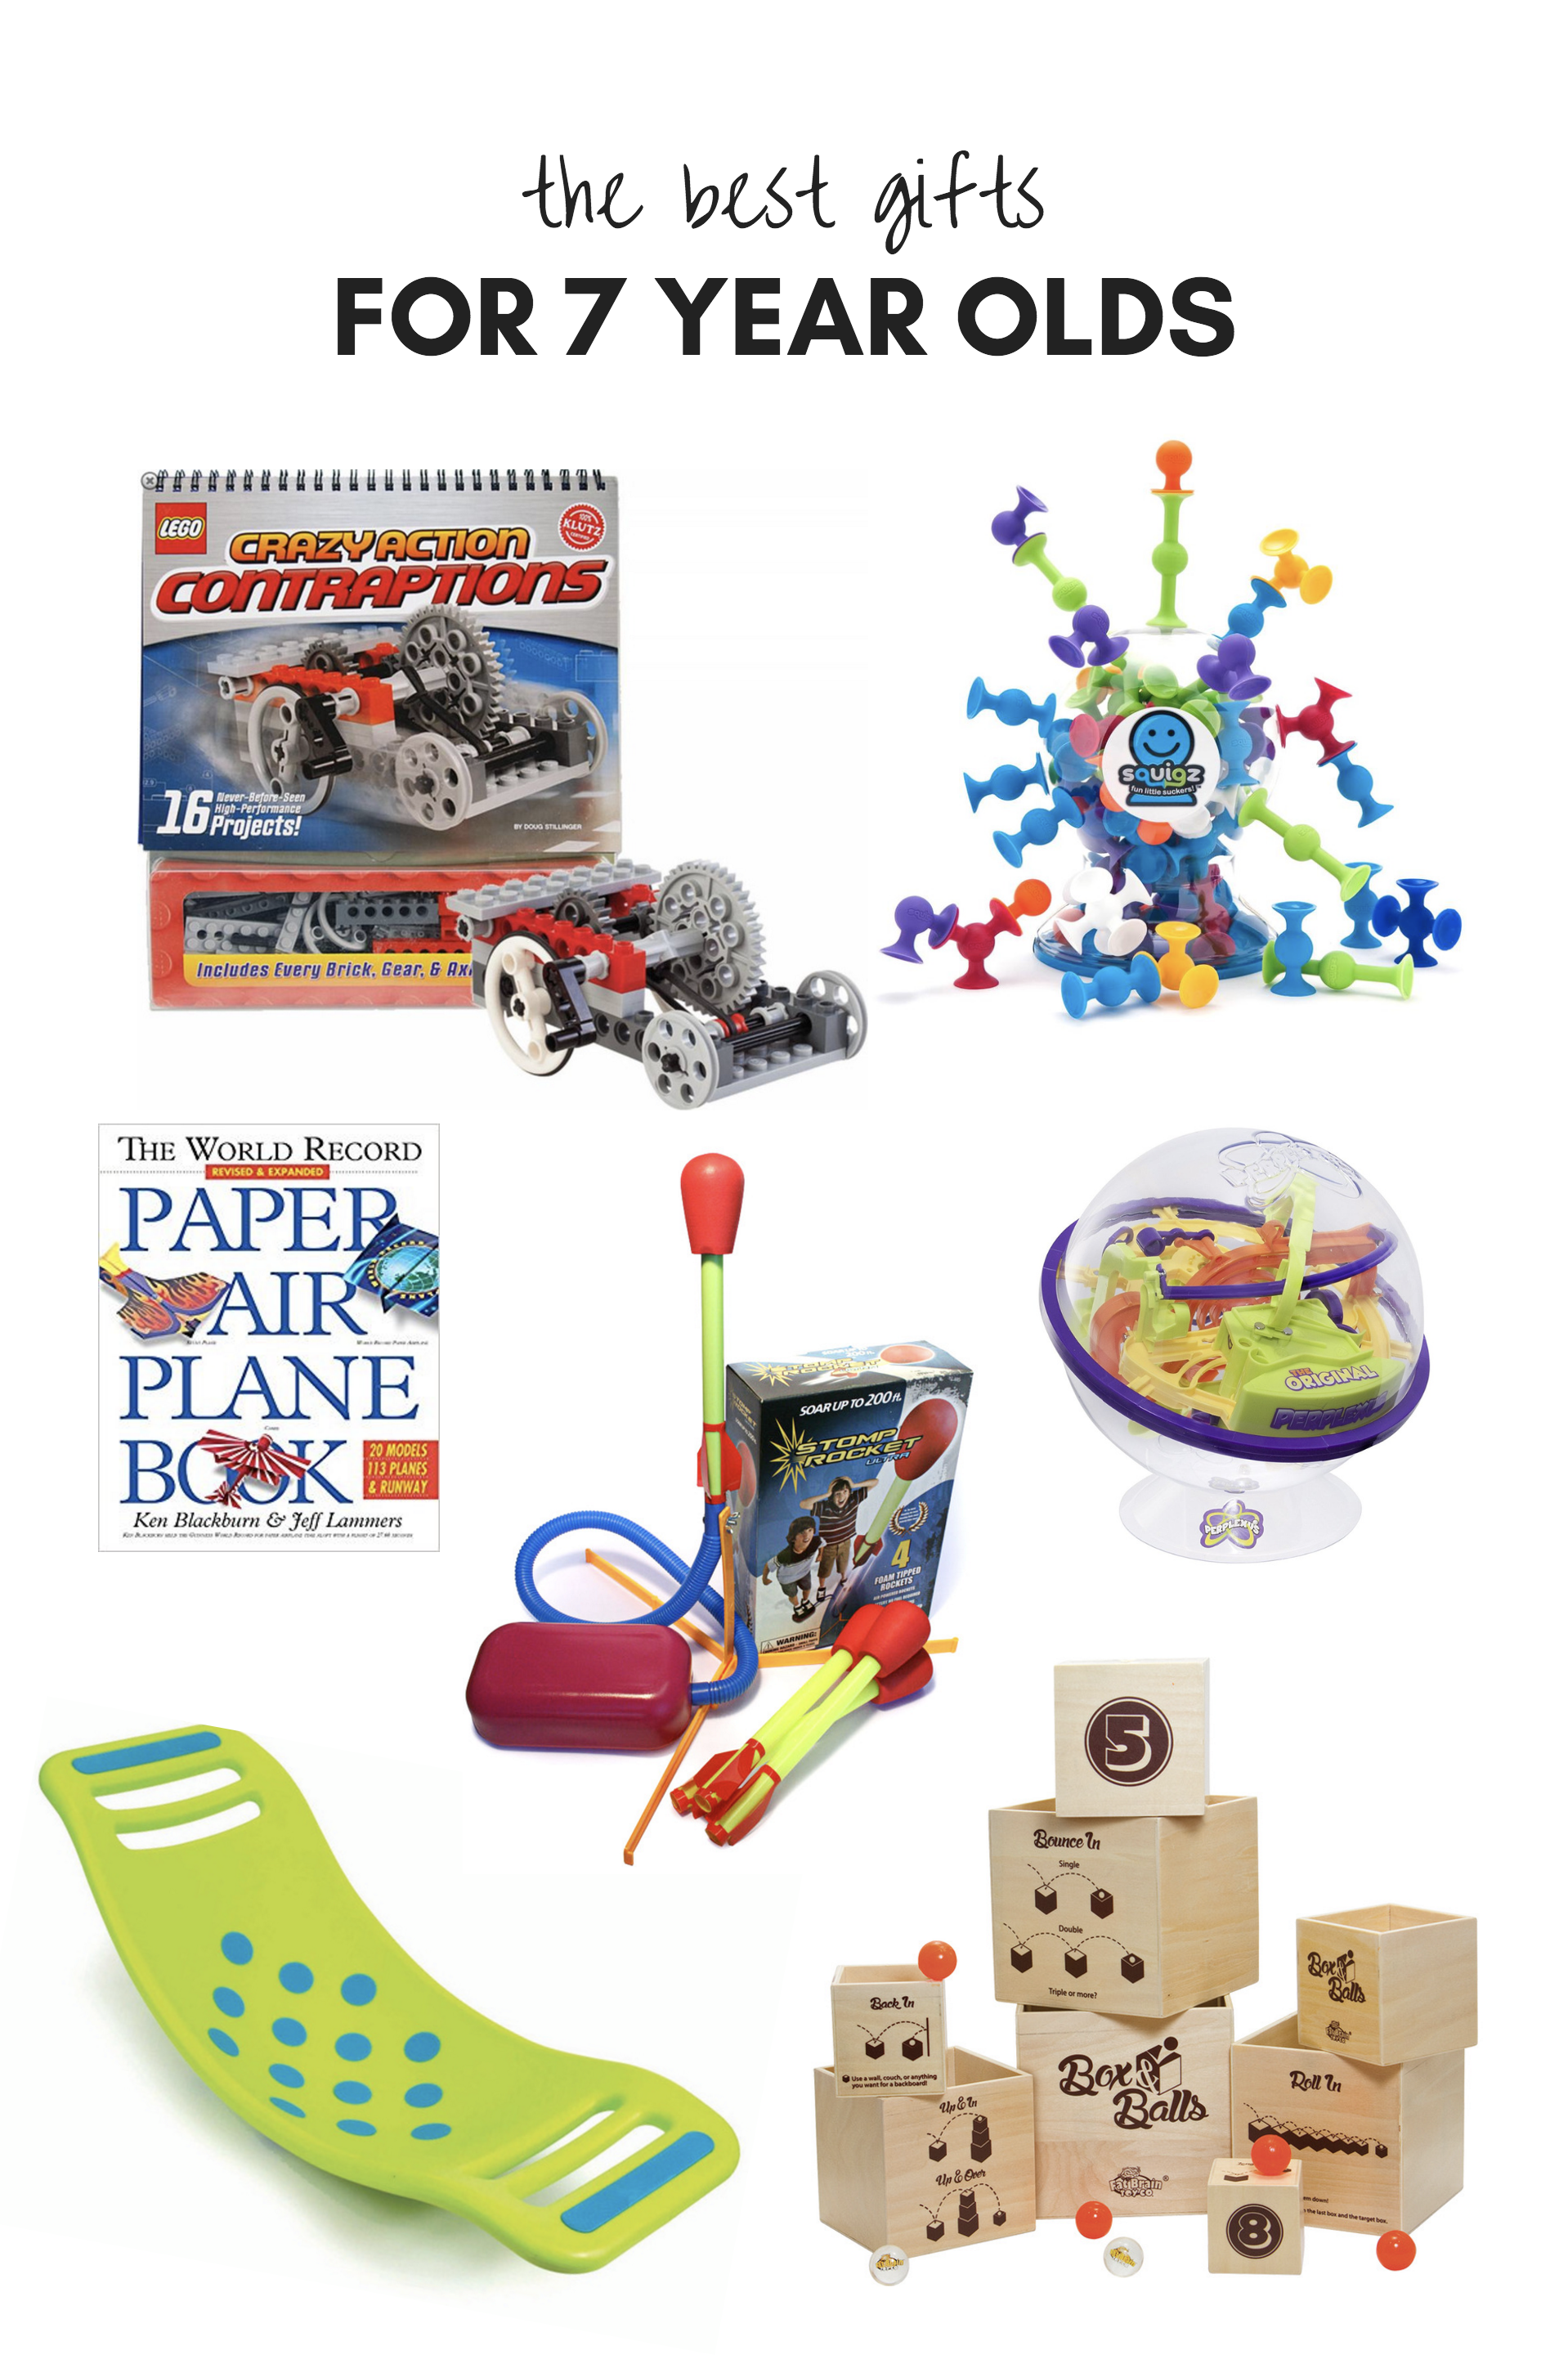 Toys For Nine Year Olds : Top educational toys for year olds images children